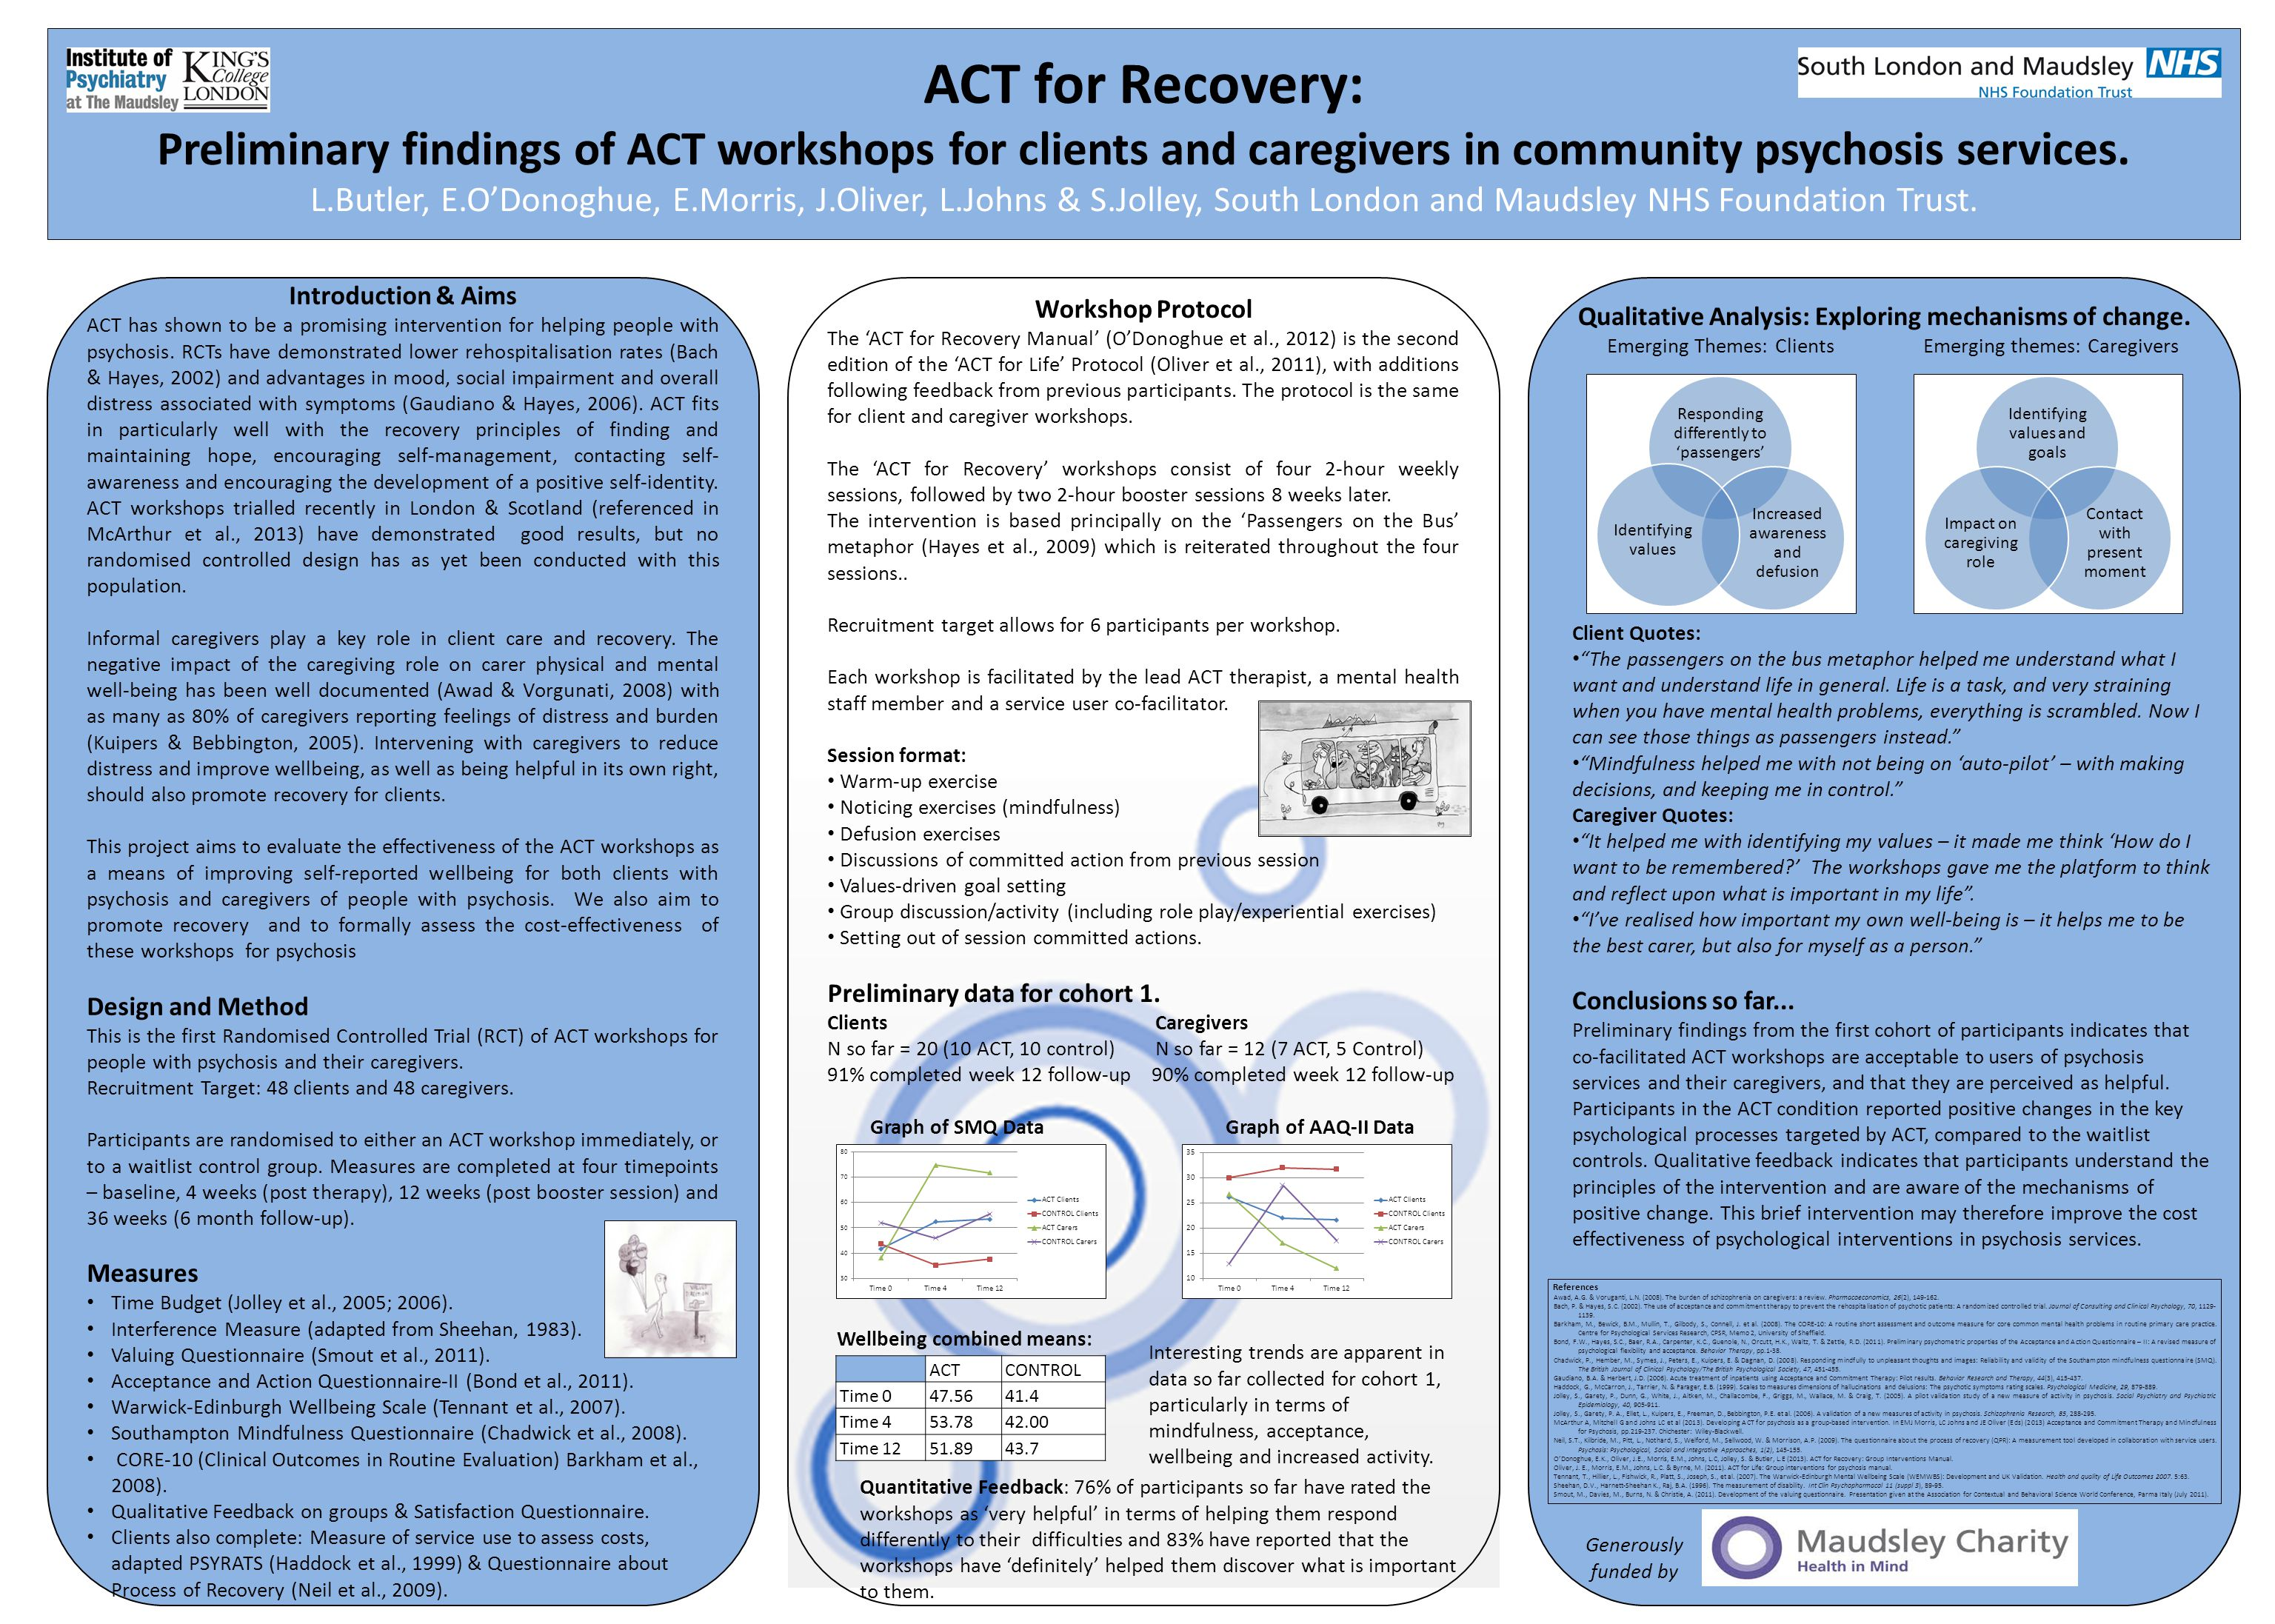 ACT for Recovery: Preliminary findings of ACT workshops for clients and caregivers in community psychosis services.